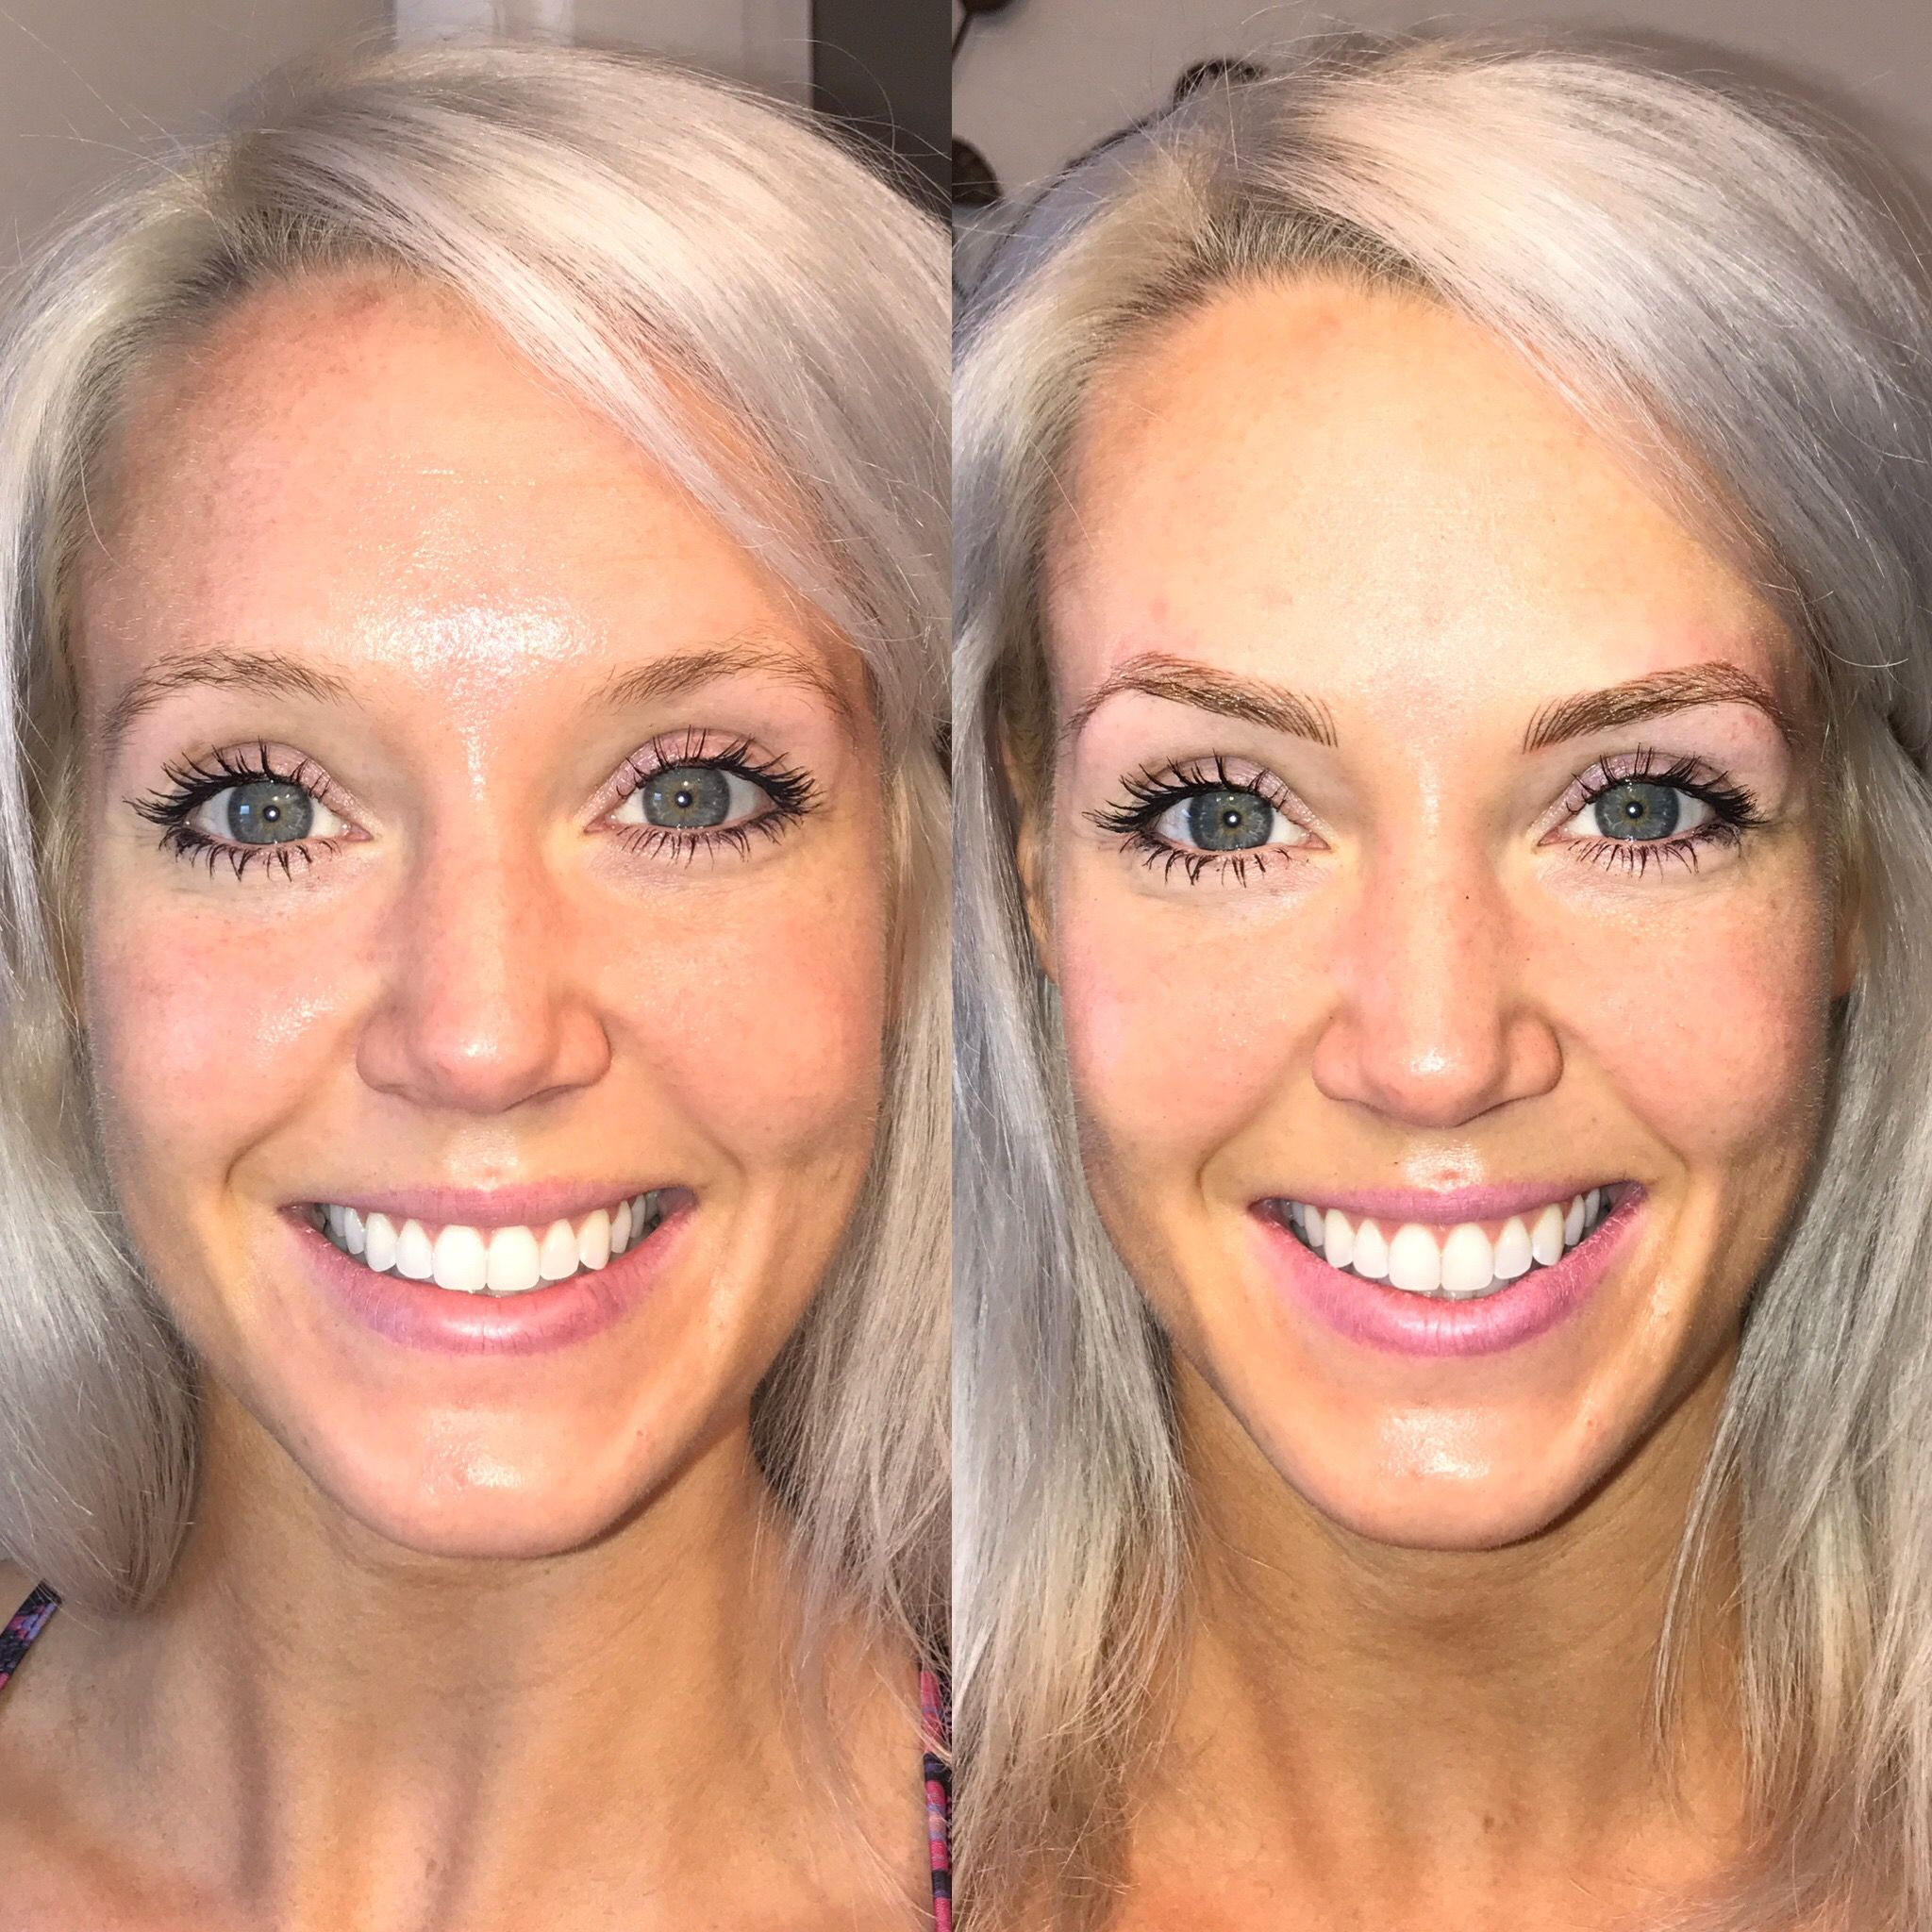 Brows are the ONLY difference between these two photos ...